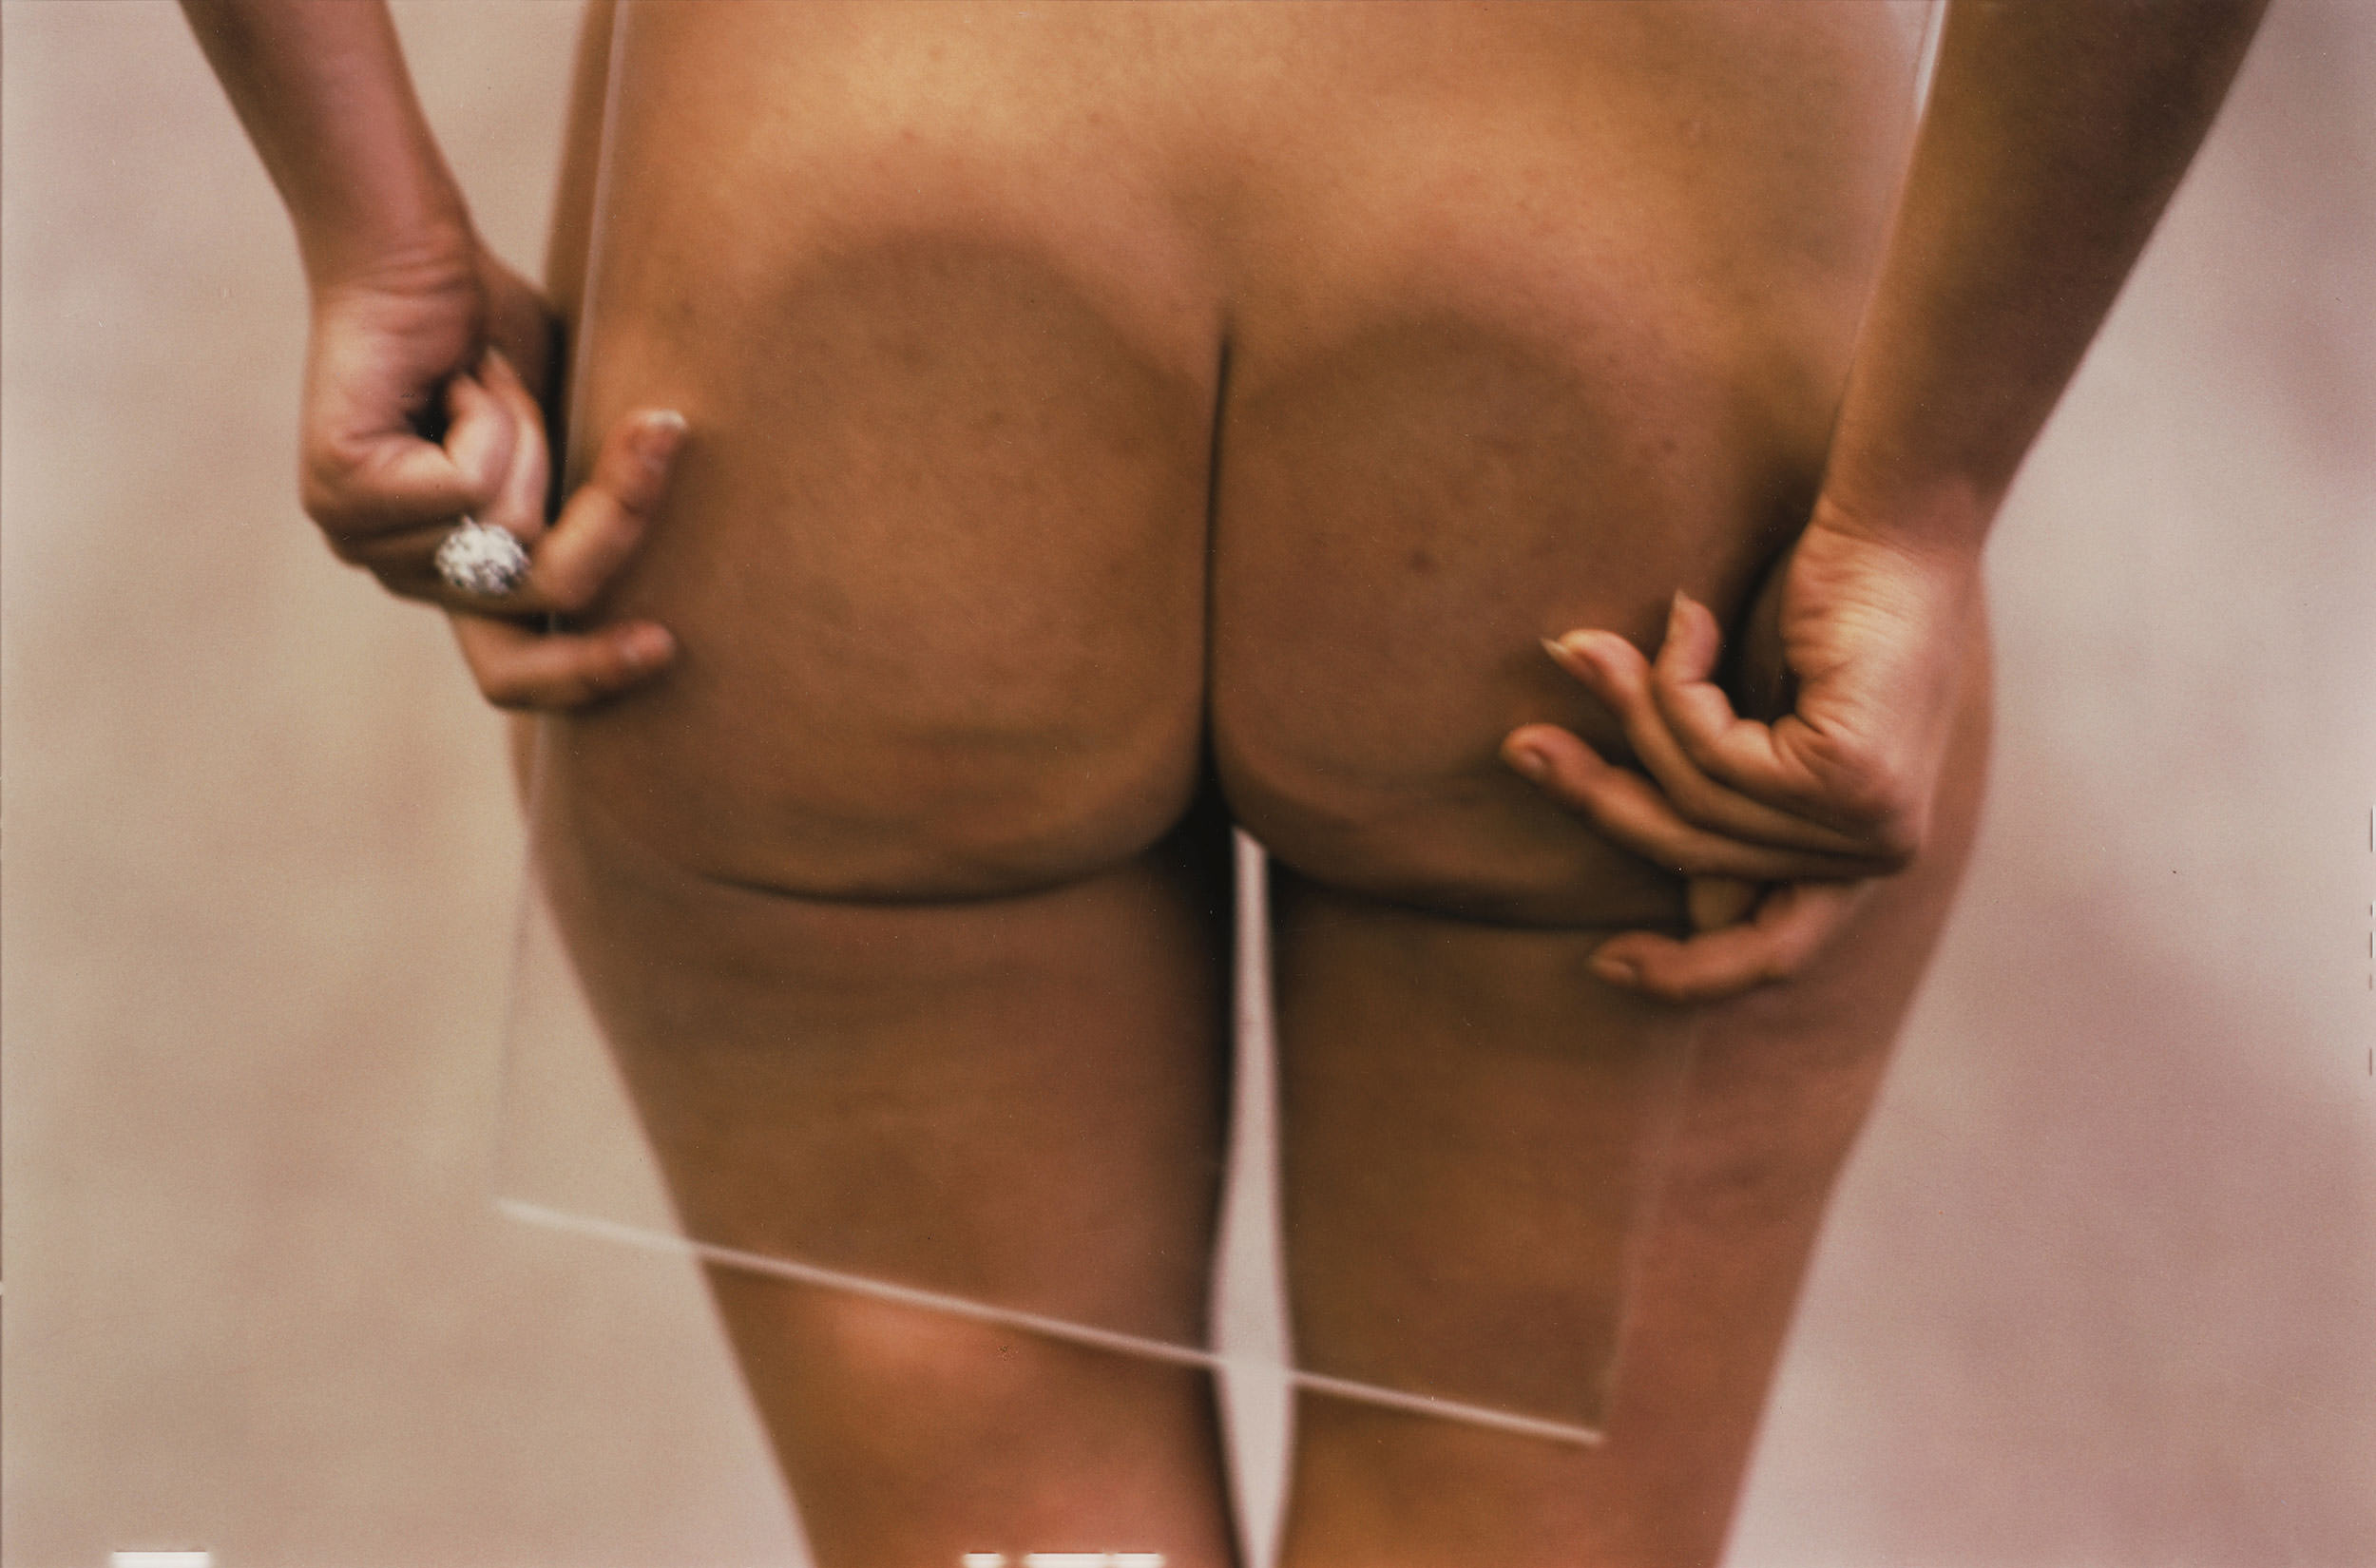 3 Ana Mendieta, Untitled (Glass on Body), 1972.